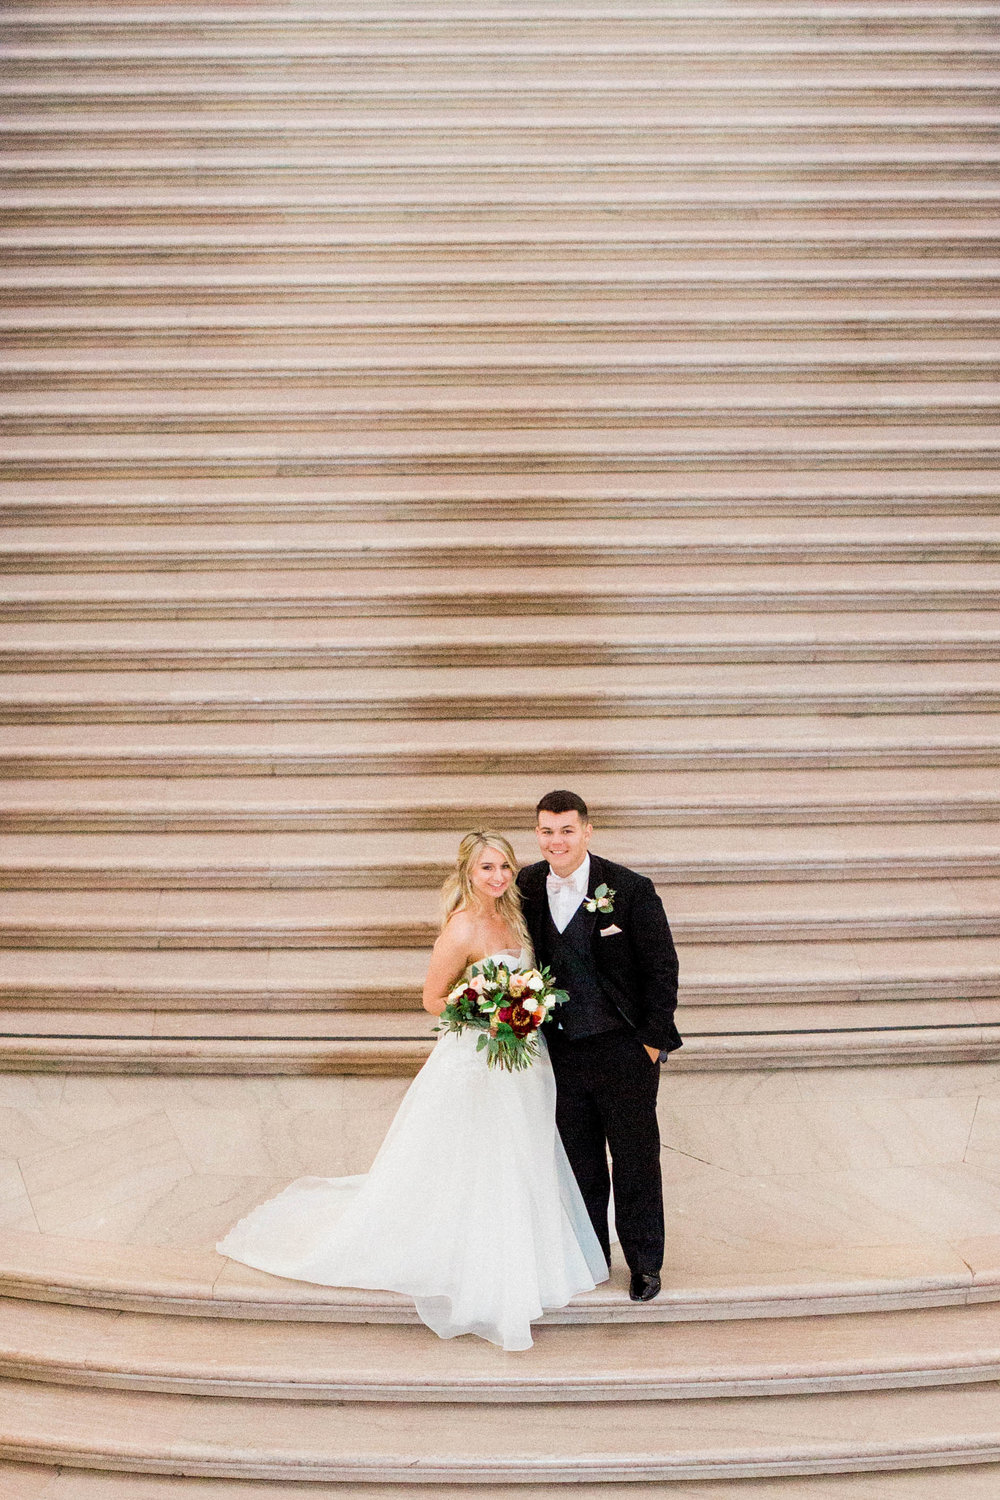 DennisRoyCoronel_Photography_SanFranciscoCityHall_Wedding-96.jpg